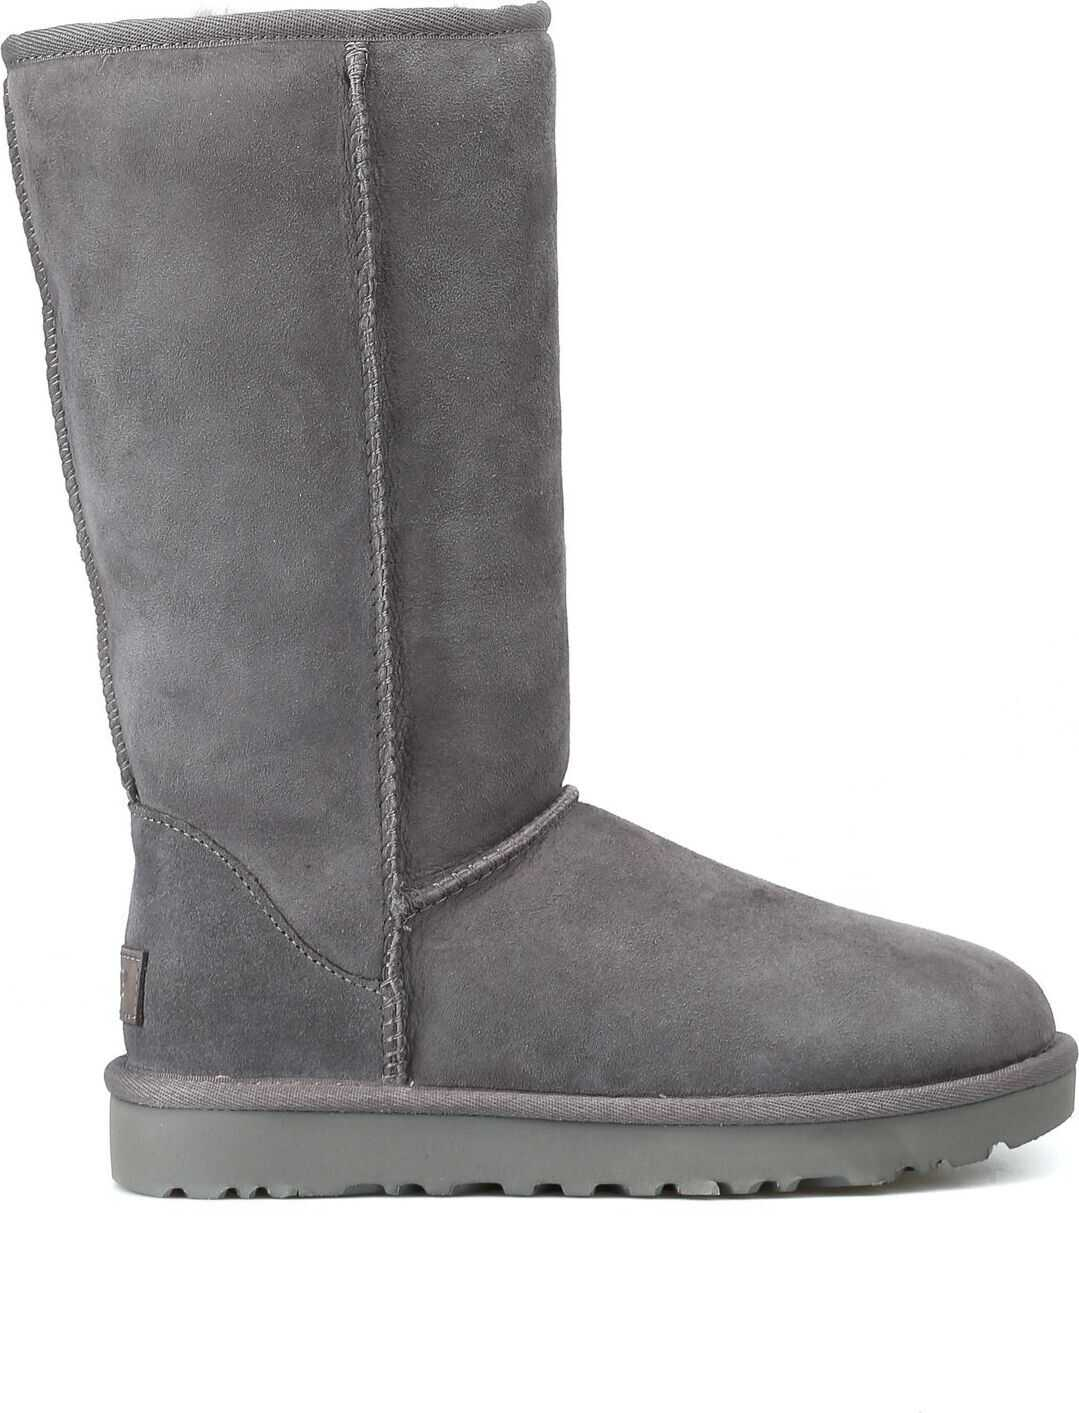 UGG Leather Boots GREY